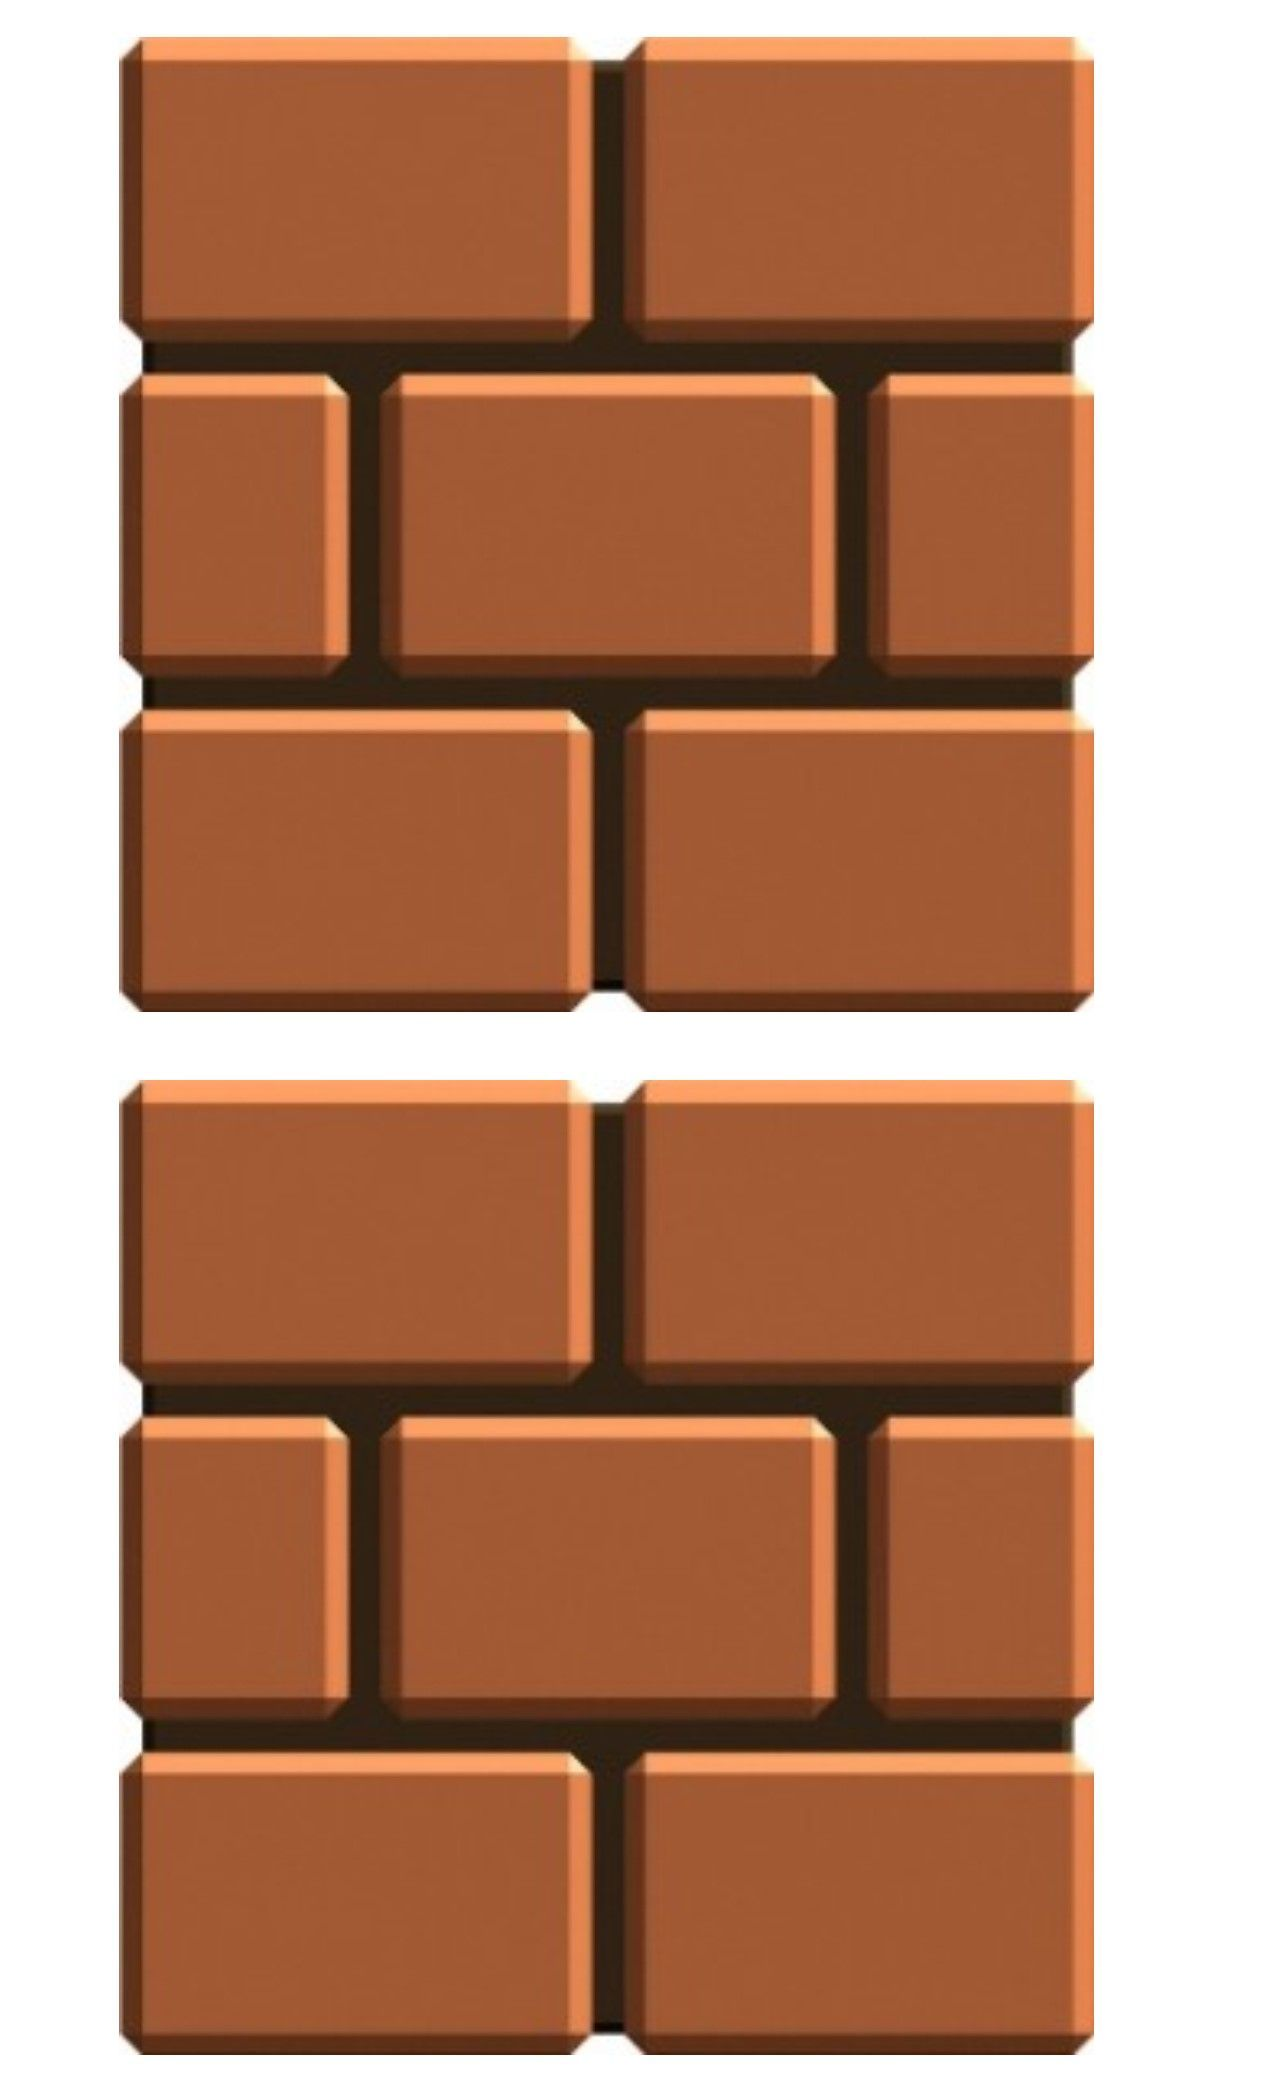 7 Brick Box Template Super Mario Brothers Designed By Missy Robb Look For Pinterest Pinner Melissa R Mario Bros Party Super Mario Bros Party Super Mario